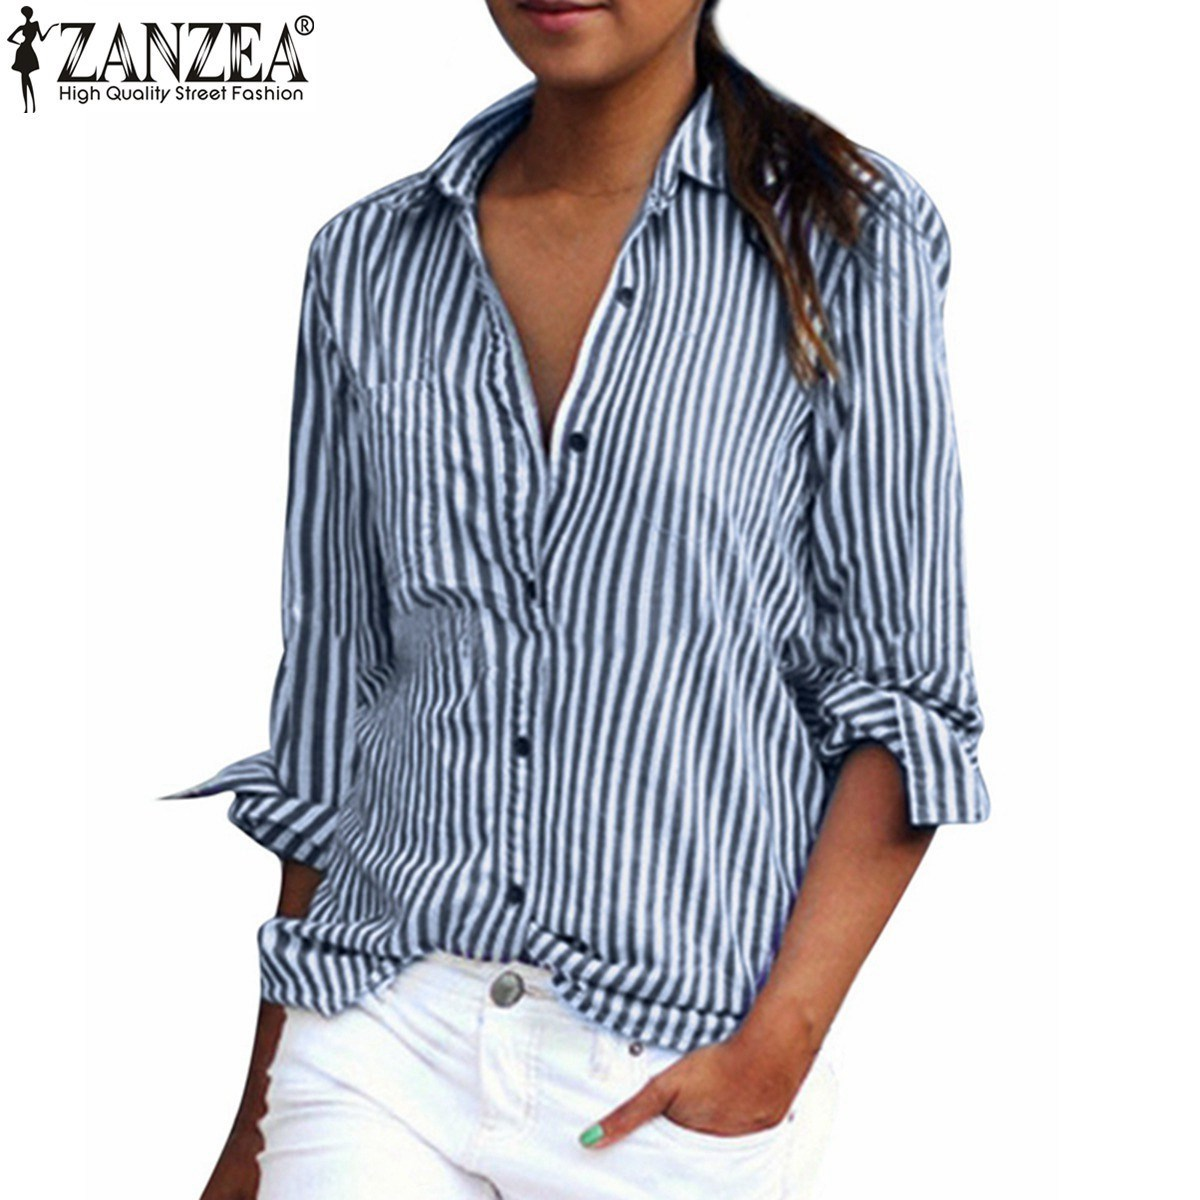 Oversized 2017 Spring Women Blusas Fashion Casual Long  Sleeve Lapel Striped Shirts Casual Leisure Blouses Tops Plus Size S-6XL